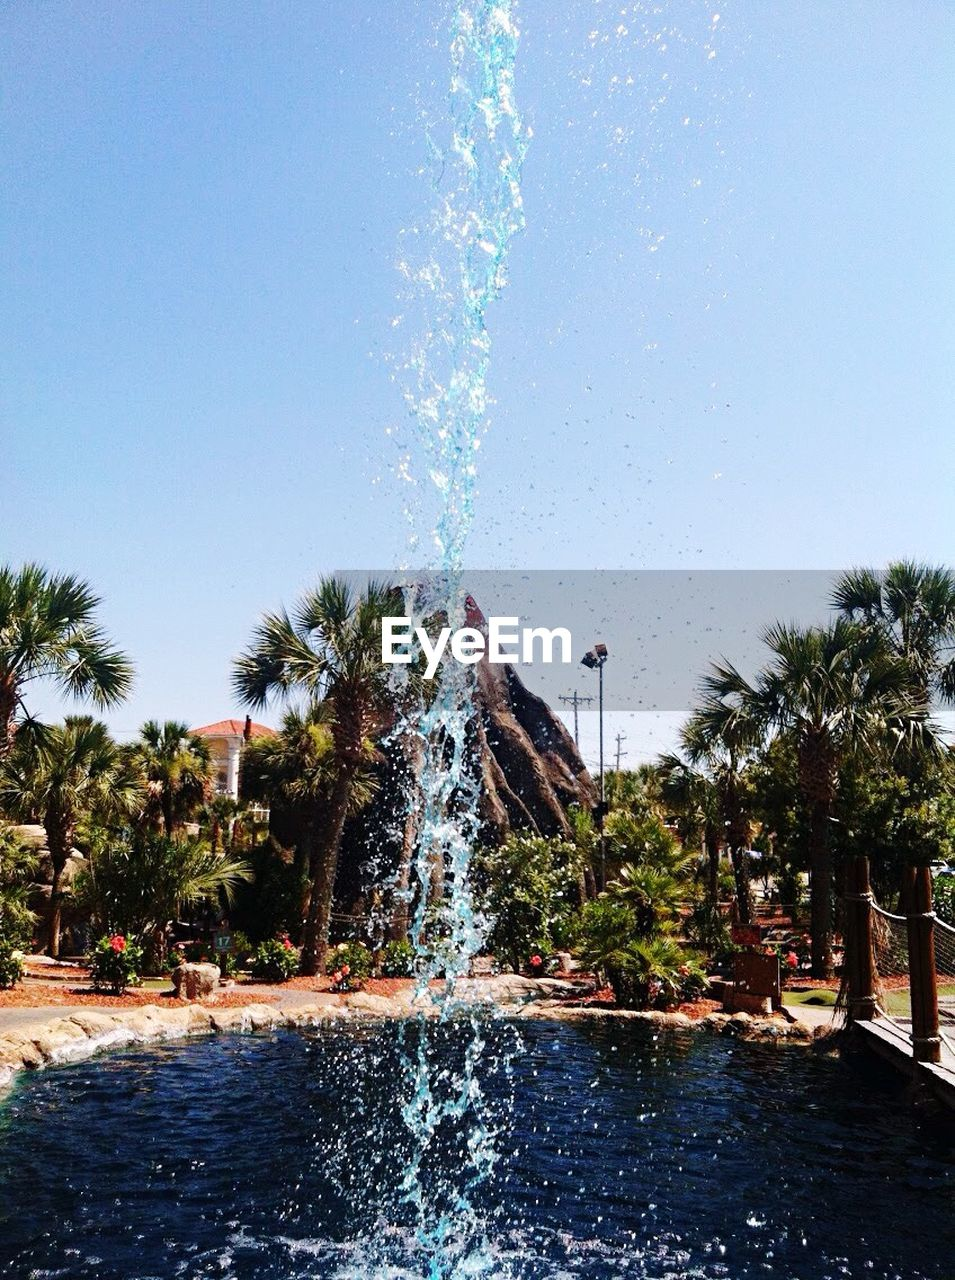 water, fountain, splashing, spraying, motion, tree, palm tree, nature, water park, swimming pool, clear sky, tourist resort, outdoors, long exposure, day, sky, vacations, beauty in nature, waterfall, blue, water slide, power in nature, architecture, building exterior, no people